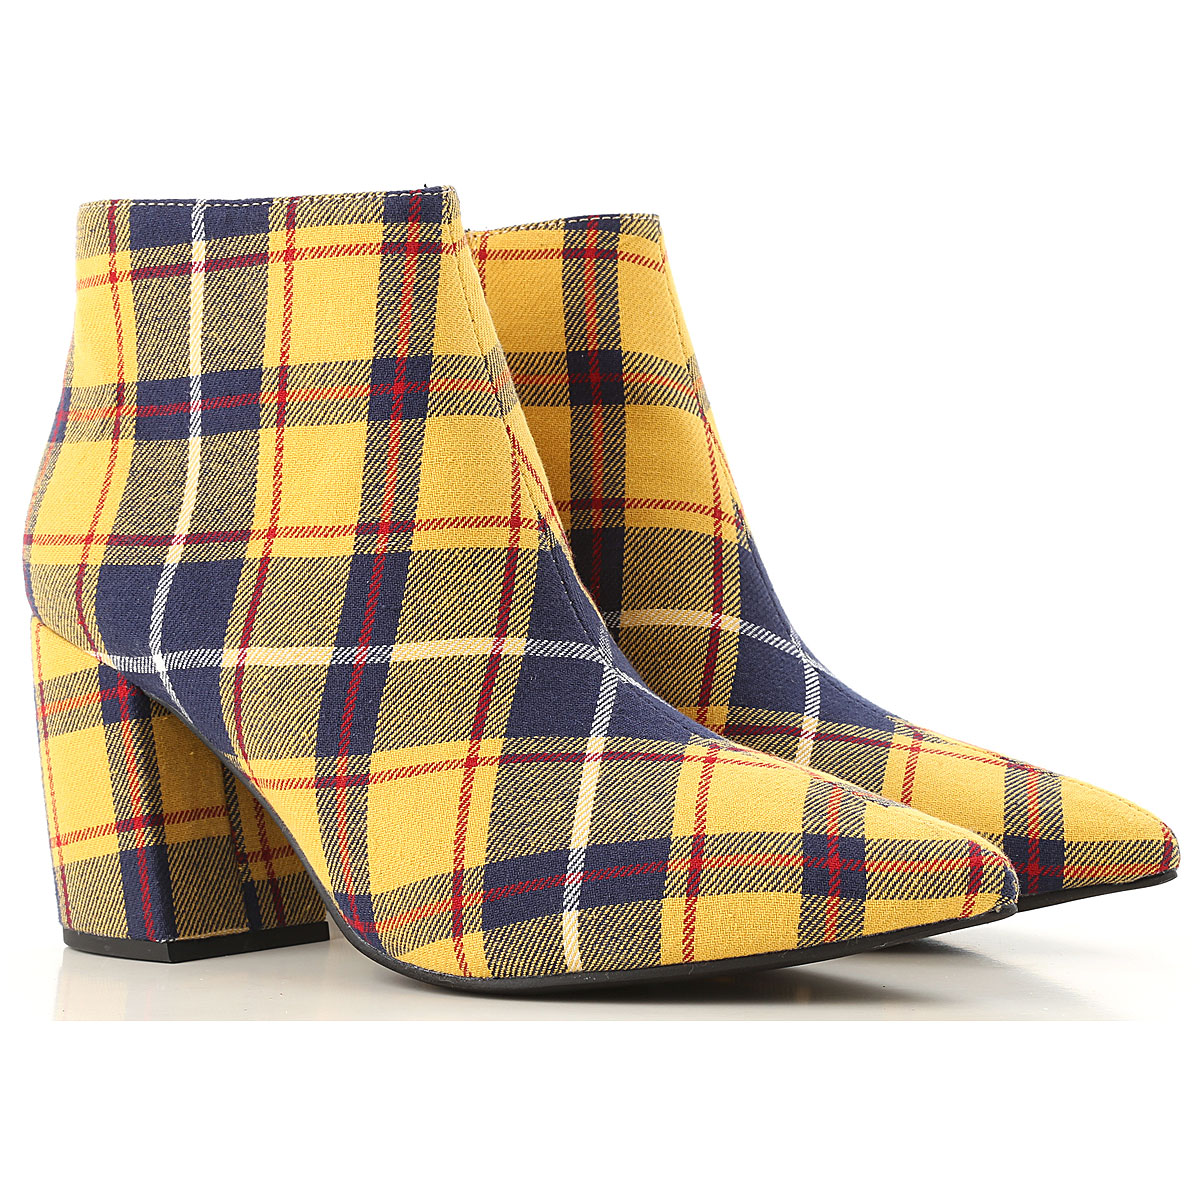 Jeffrey Campbell Boots for Women Booties On Sale USA - GOOFASH